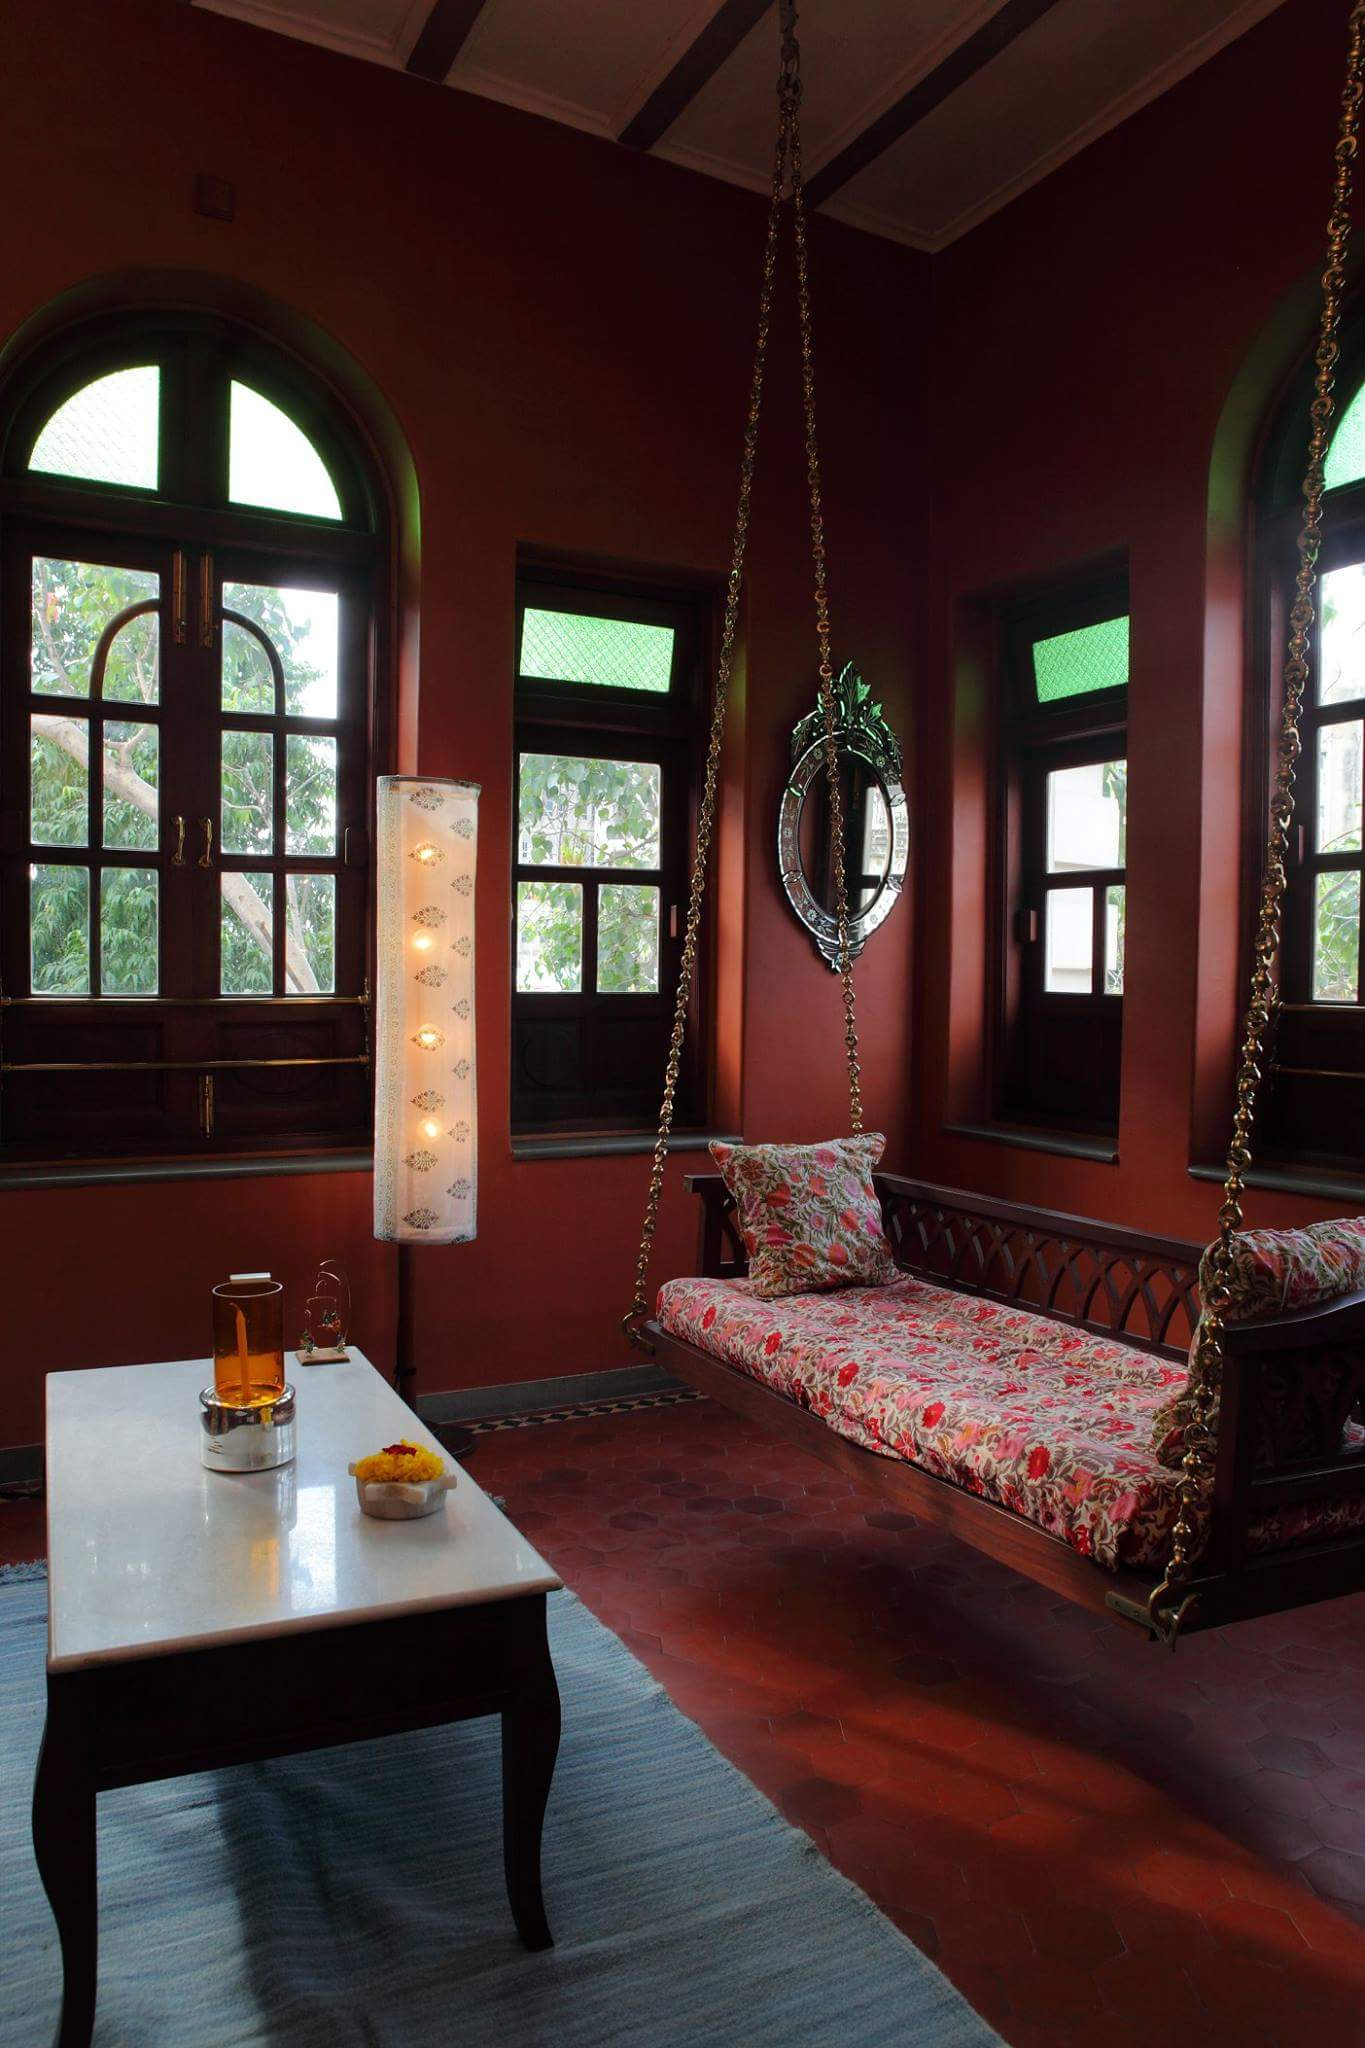 The House of MG, Ahmedabad – Hospitality with heritage